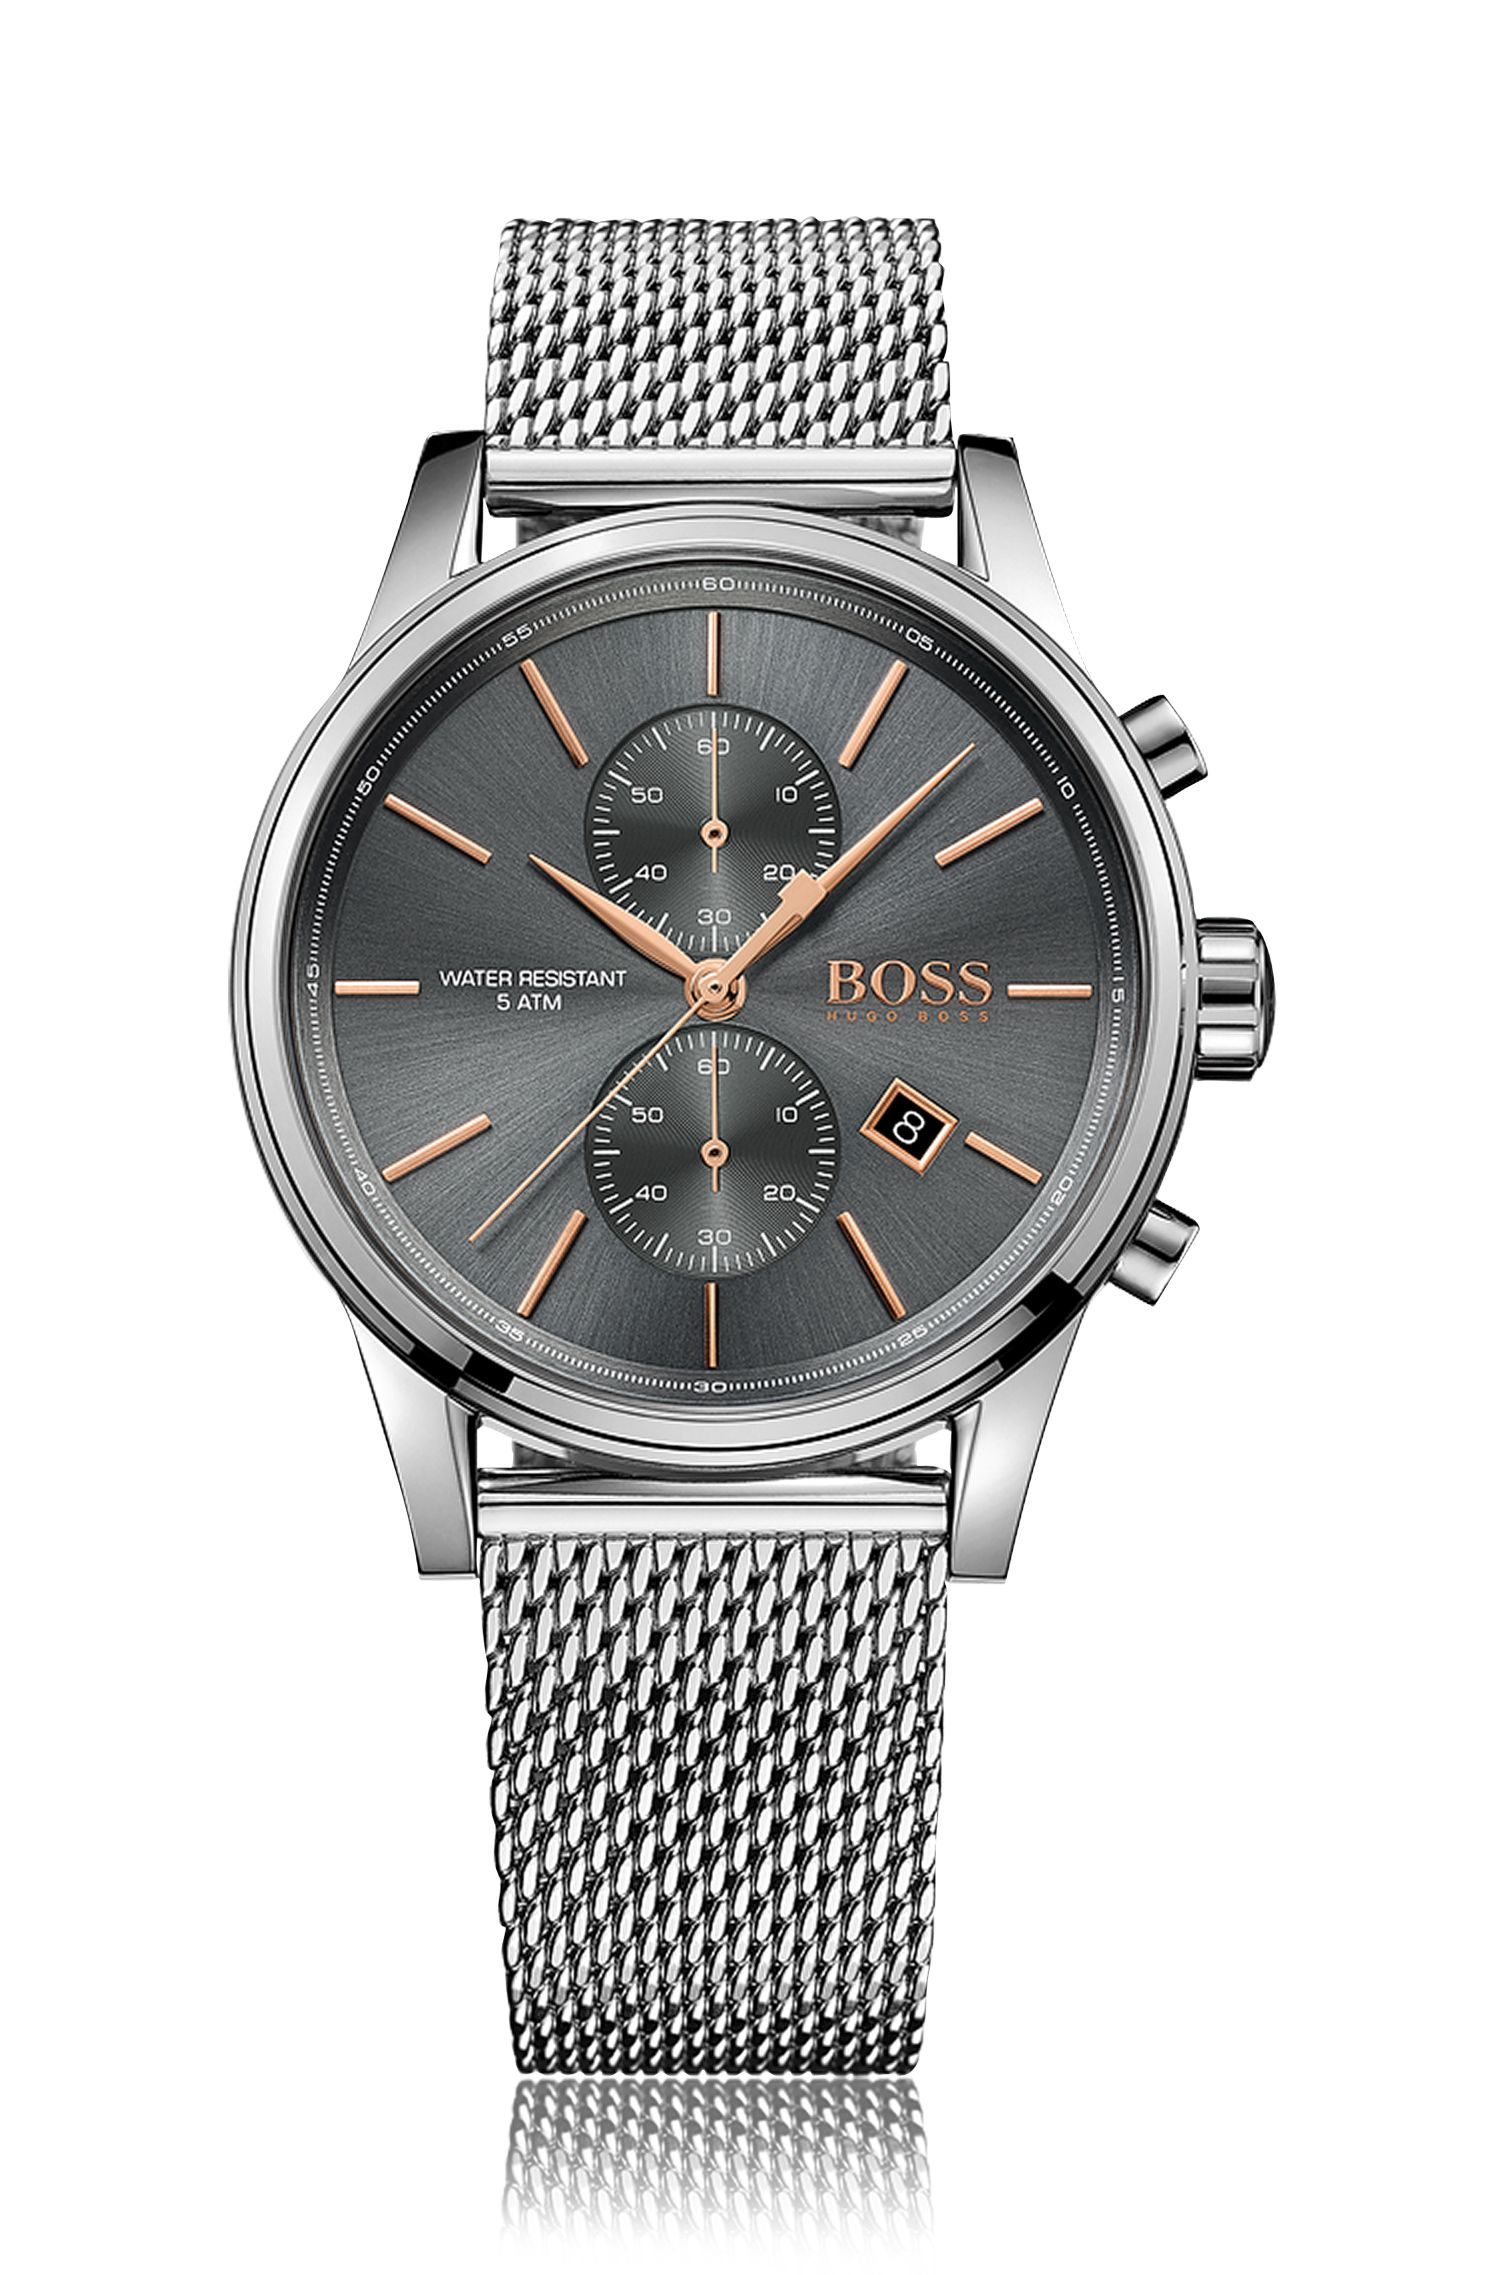 Polished stainless-steel chronograph watch with grey dial and mesh bracelet